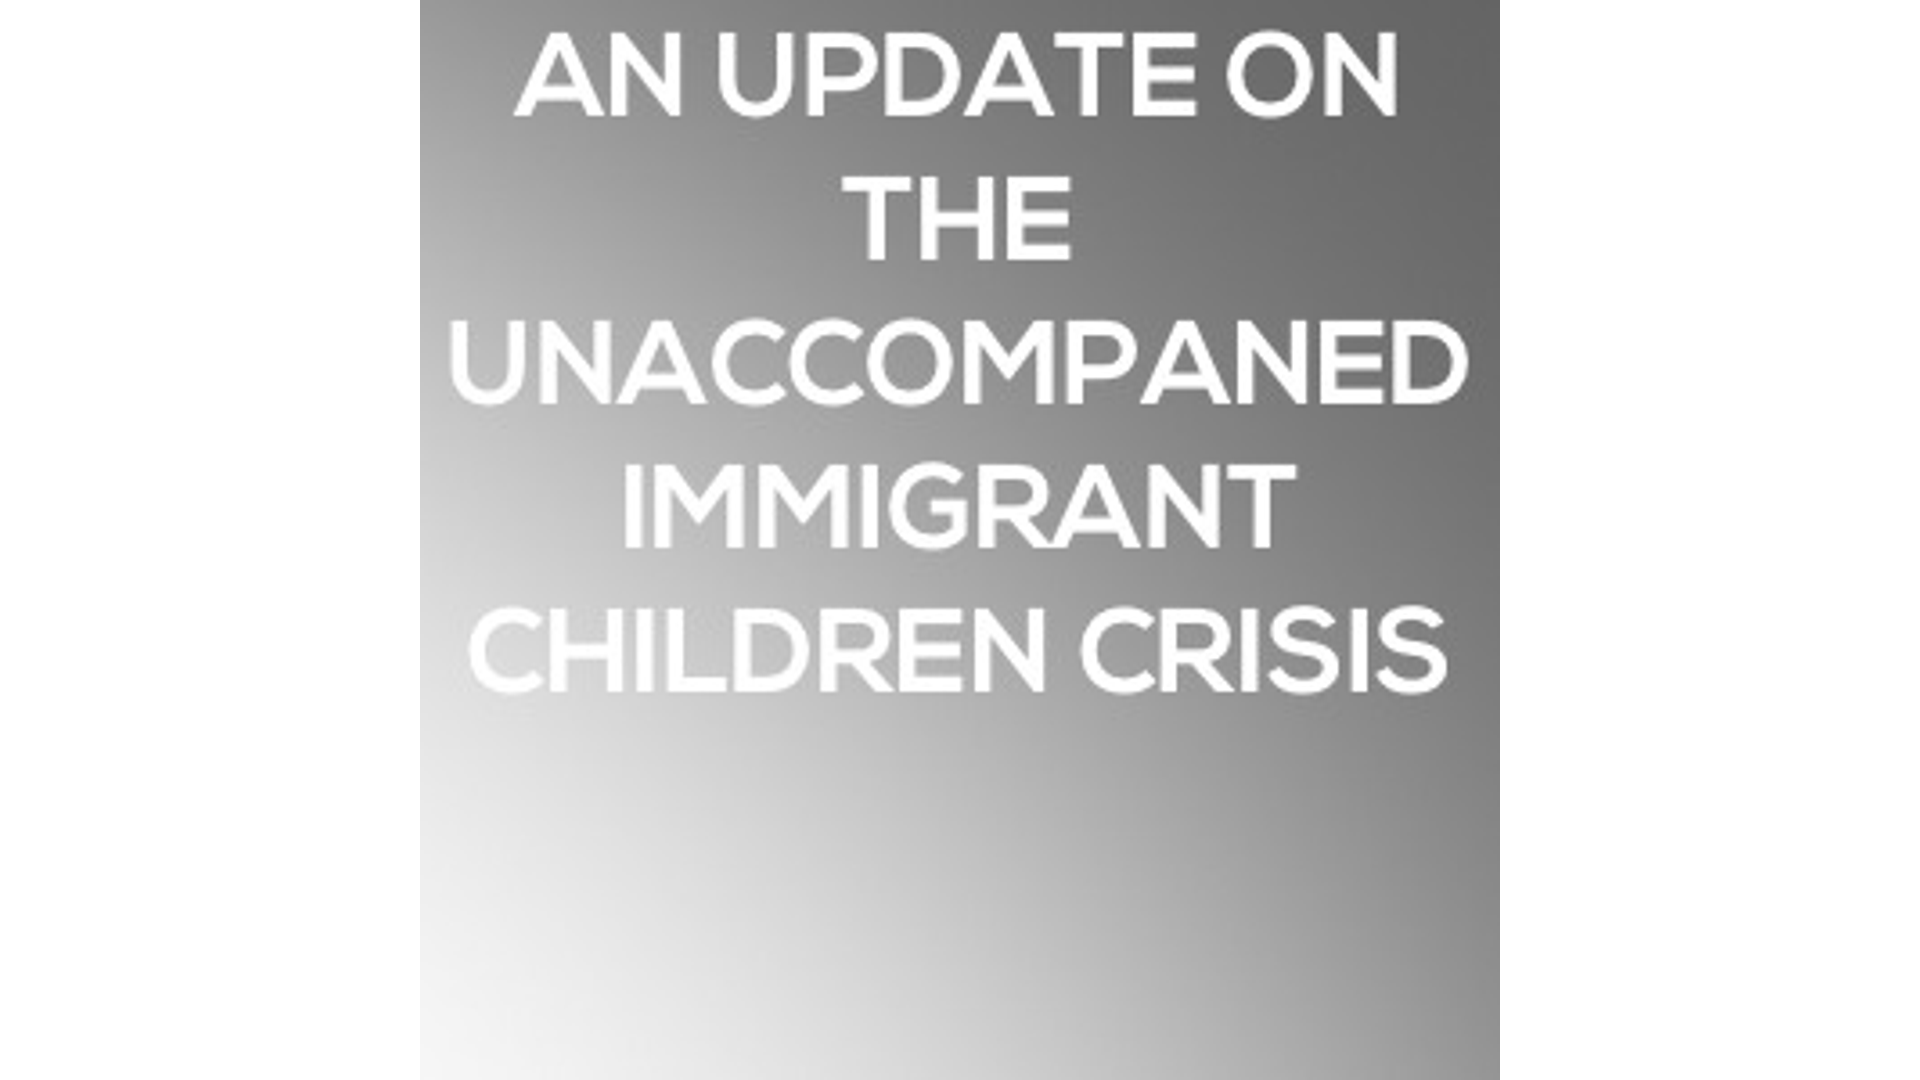 An Update From Todd Wagner On The Unaccompanied Immigrant Children Crisis Hero Image